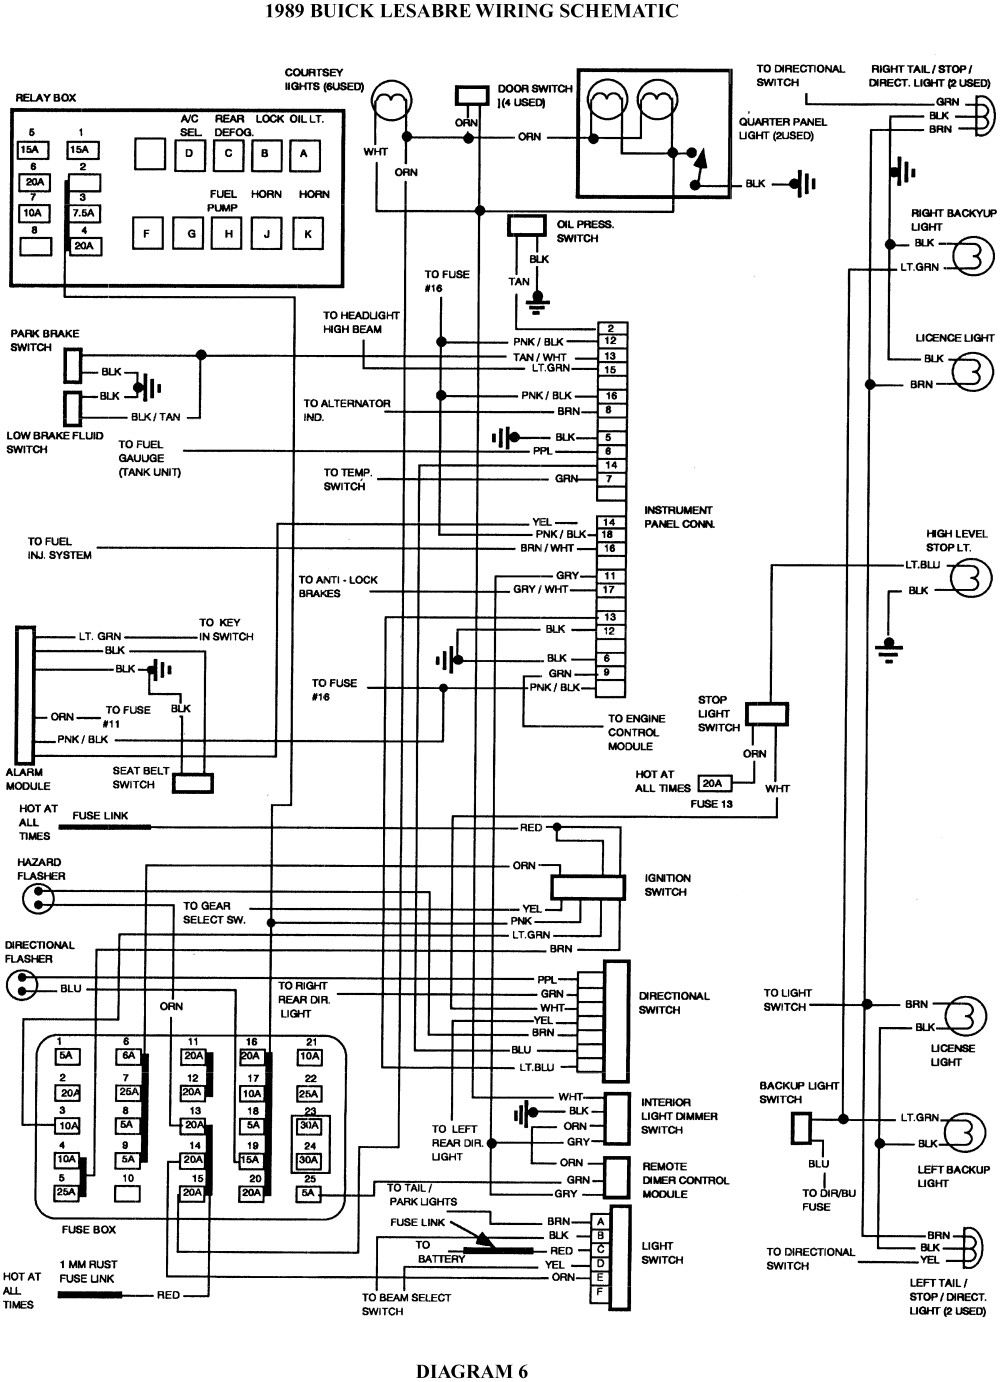 hight resolution of 2001 lesabre wiring diagram wiring diagrams favorites tail light wiring diagram for 2001 lesabre source wiring diagram 2000 buick